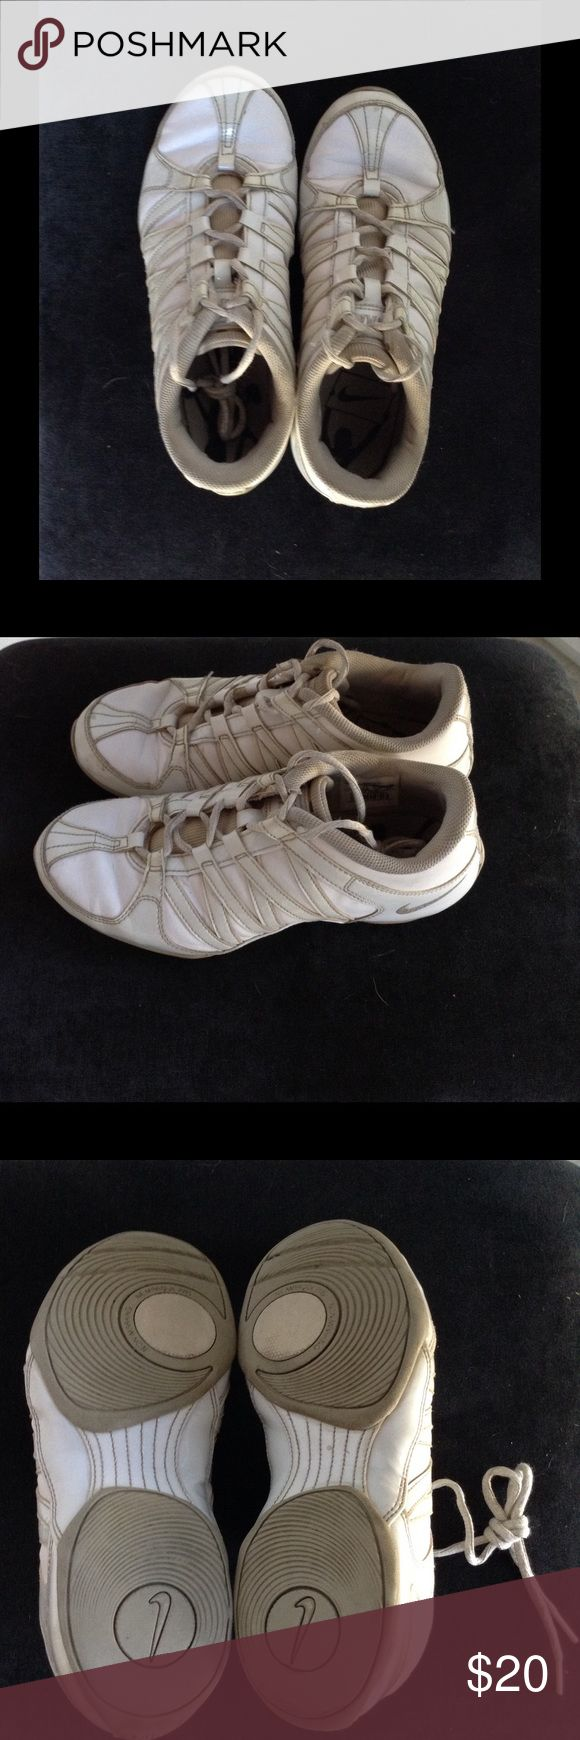 1000 ideas about cheerleading shoes on cheer